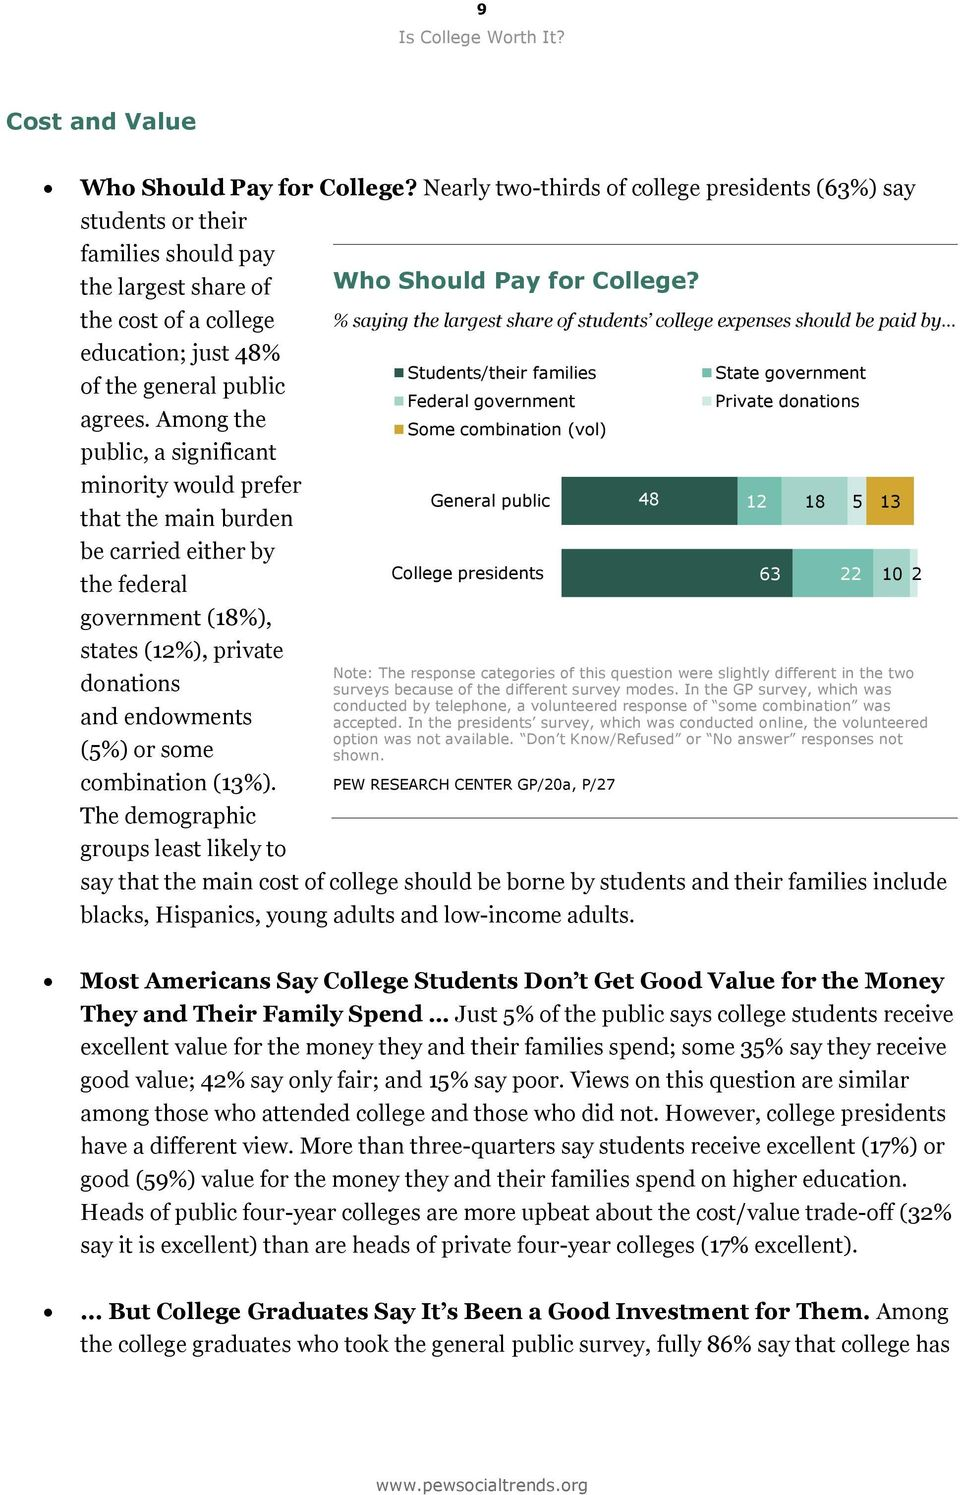 Among the public, a significant minority would prefer that the main burden be carried either by the federal government (18%), states (12%), private donations and endowments (5%) or some combination